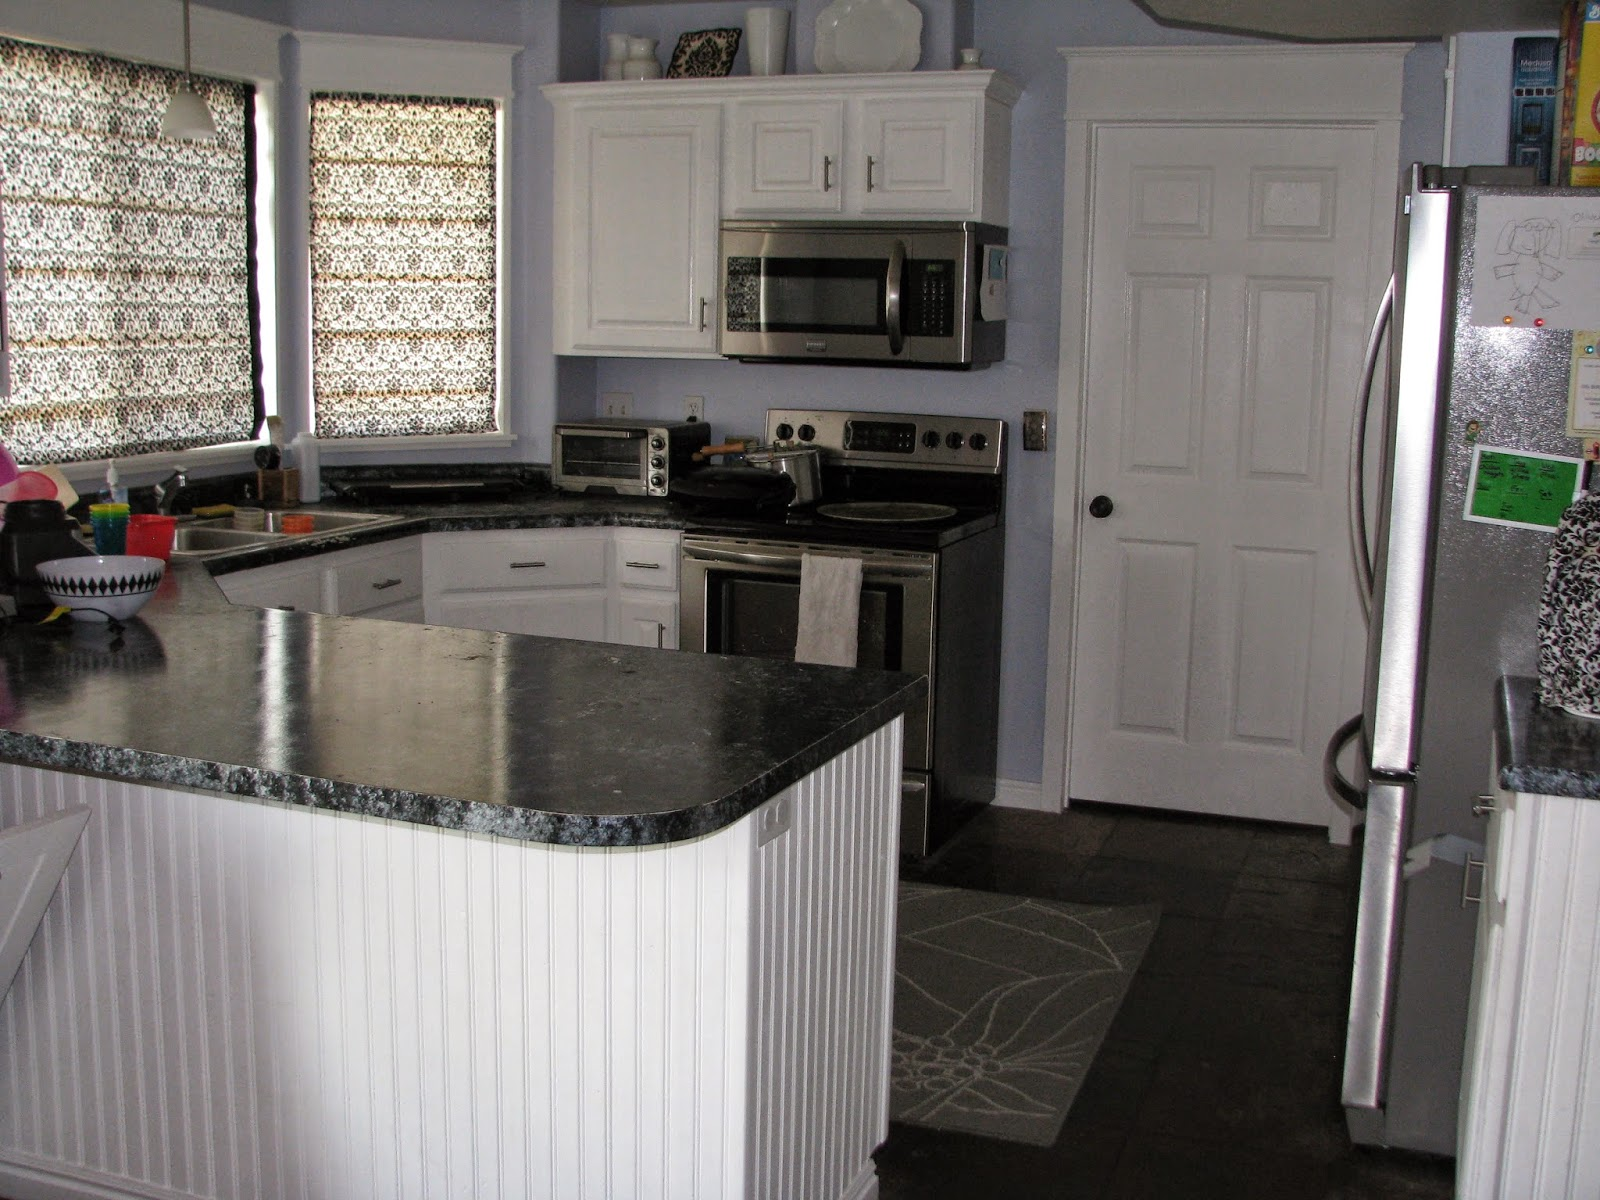 My So-Called DIY Blog: Painted Countertop (Giani Granite) Review - 2.5 ...